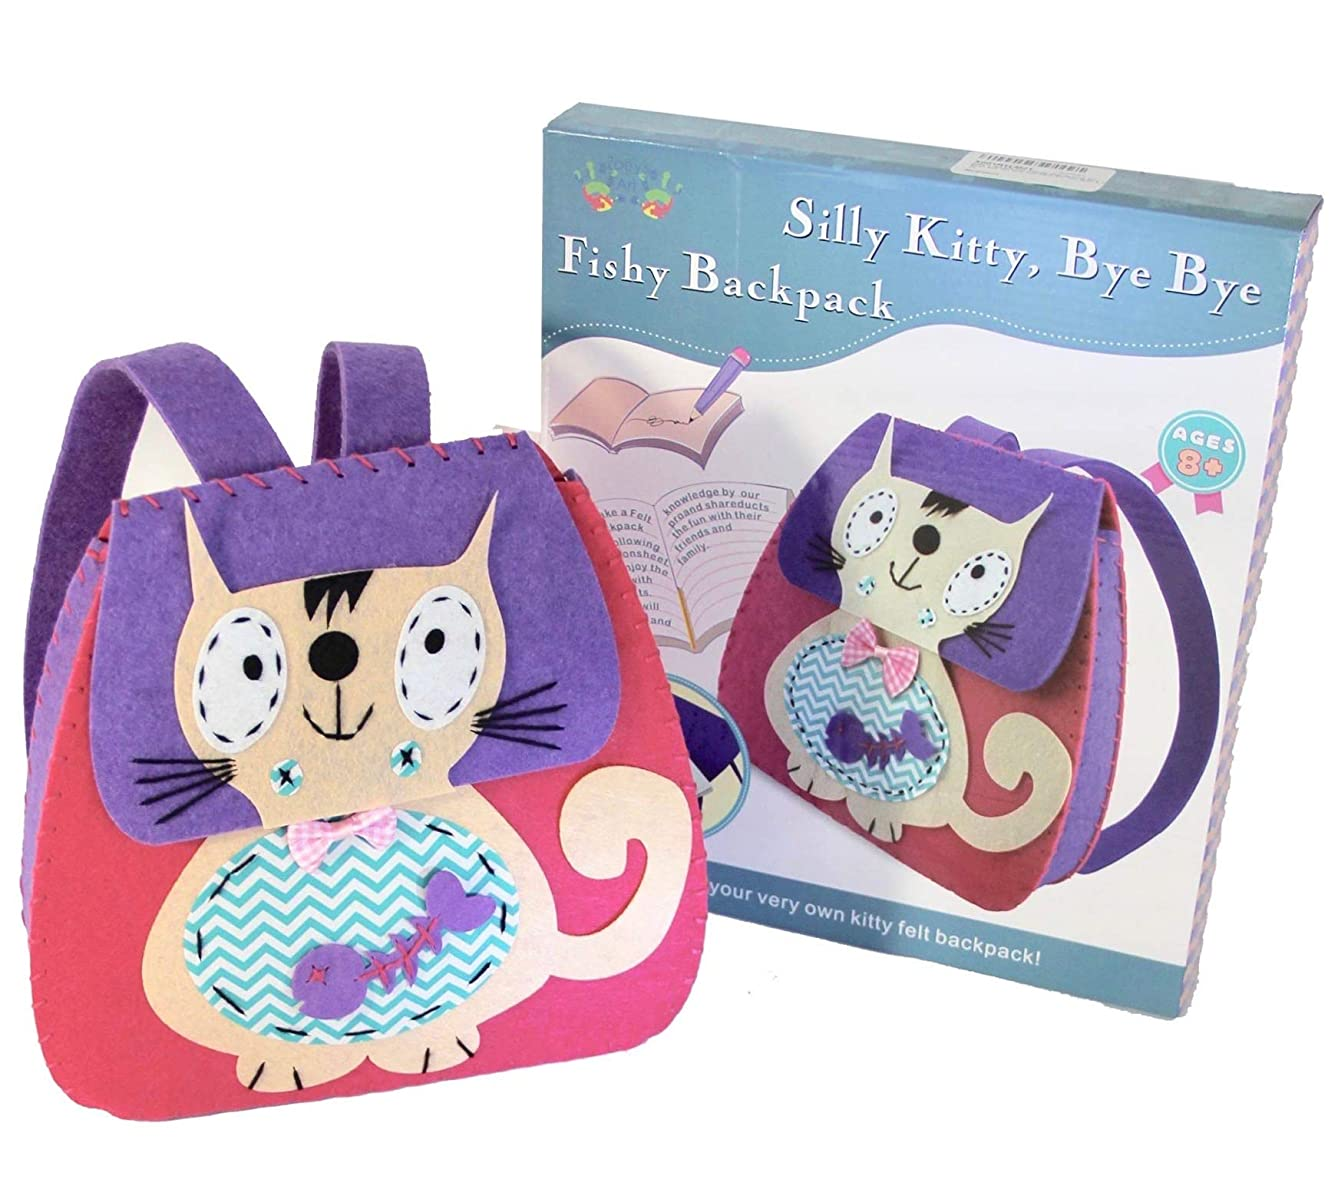 Craft Kit for Kids, Sewing Activity DIY Backpack Kit for Girls-Silly Kitty